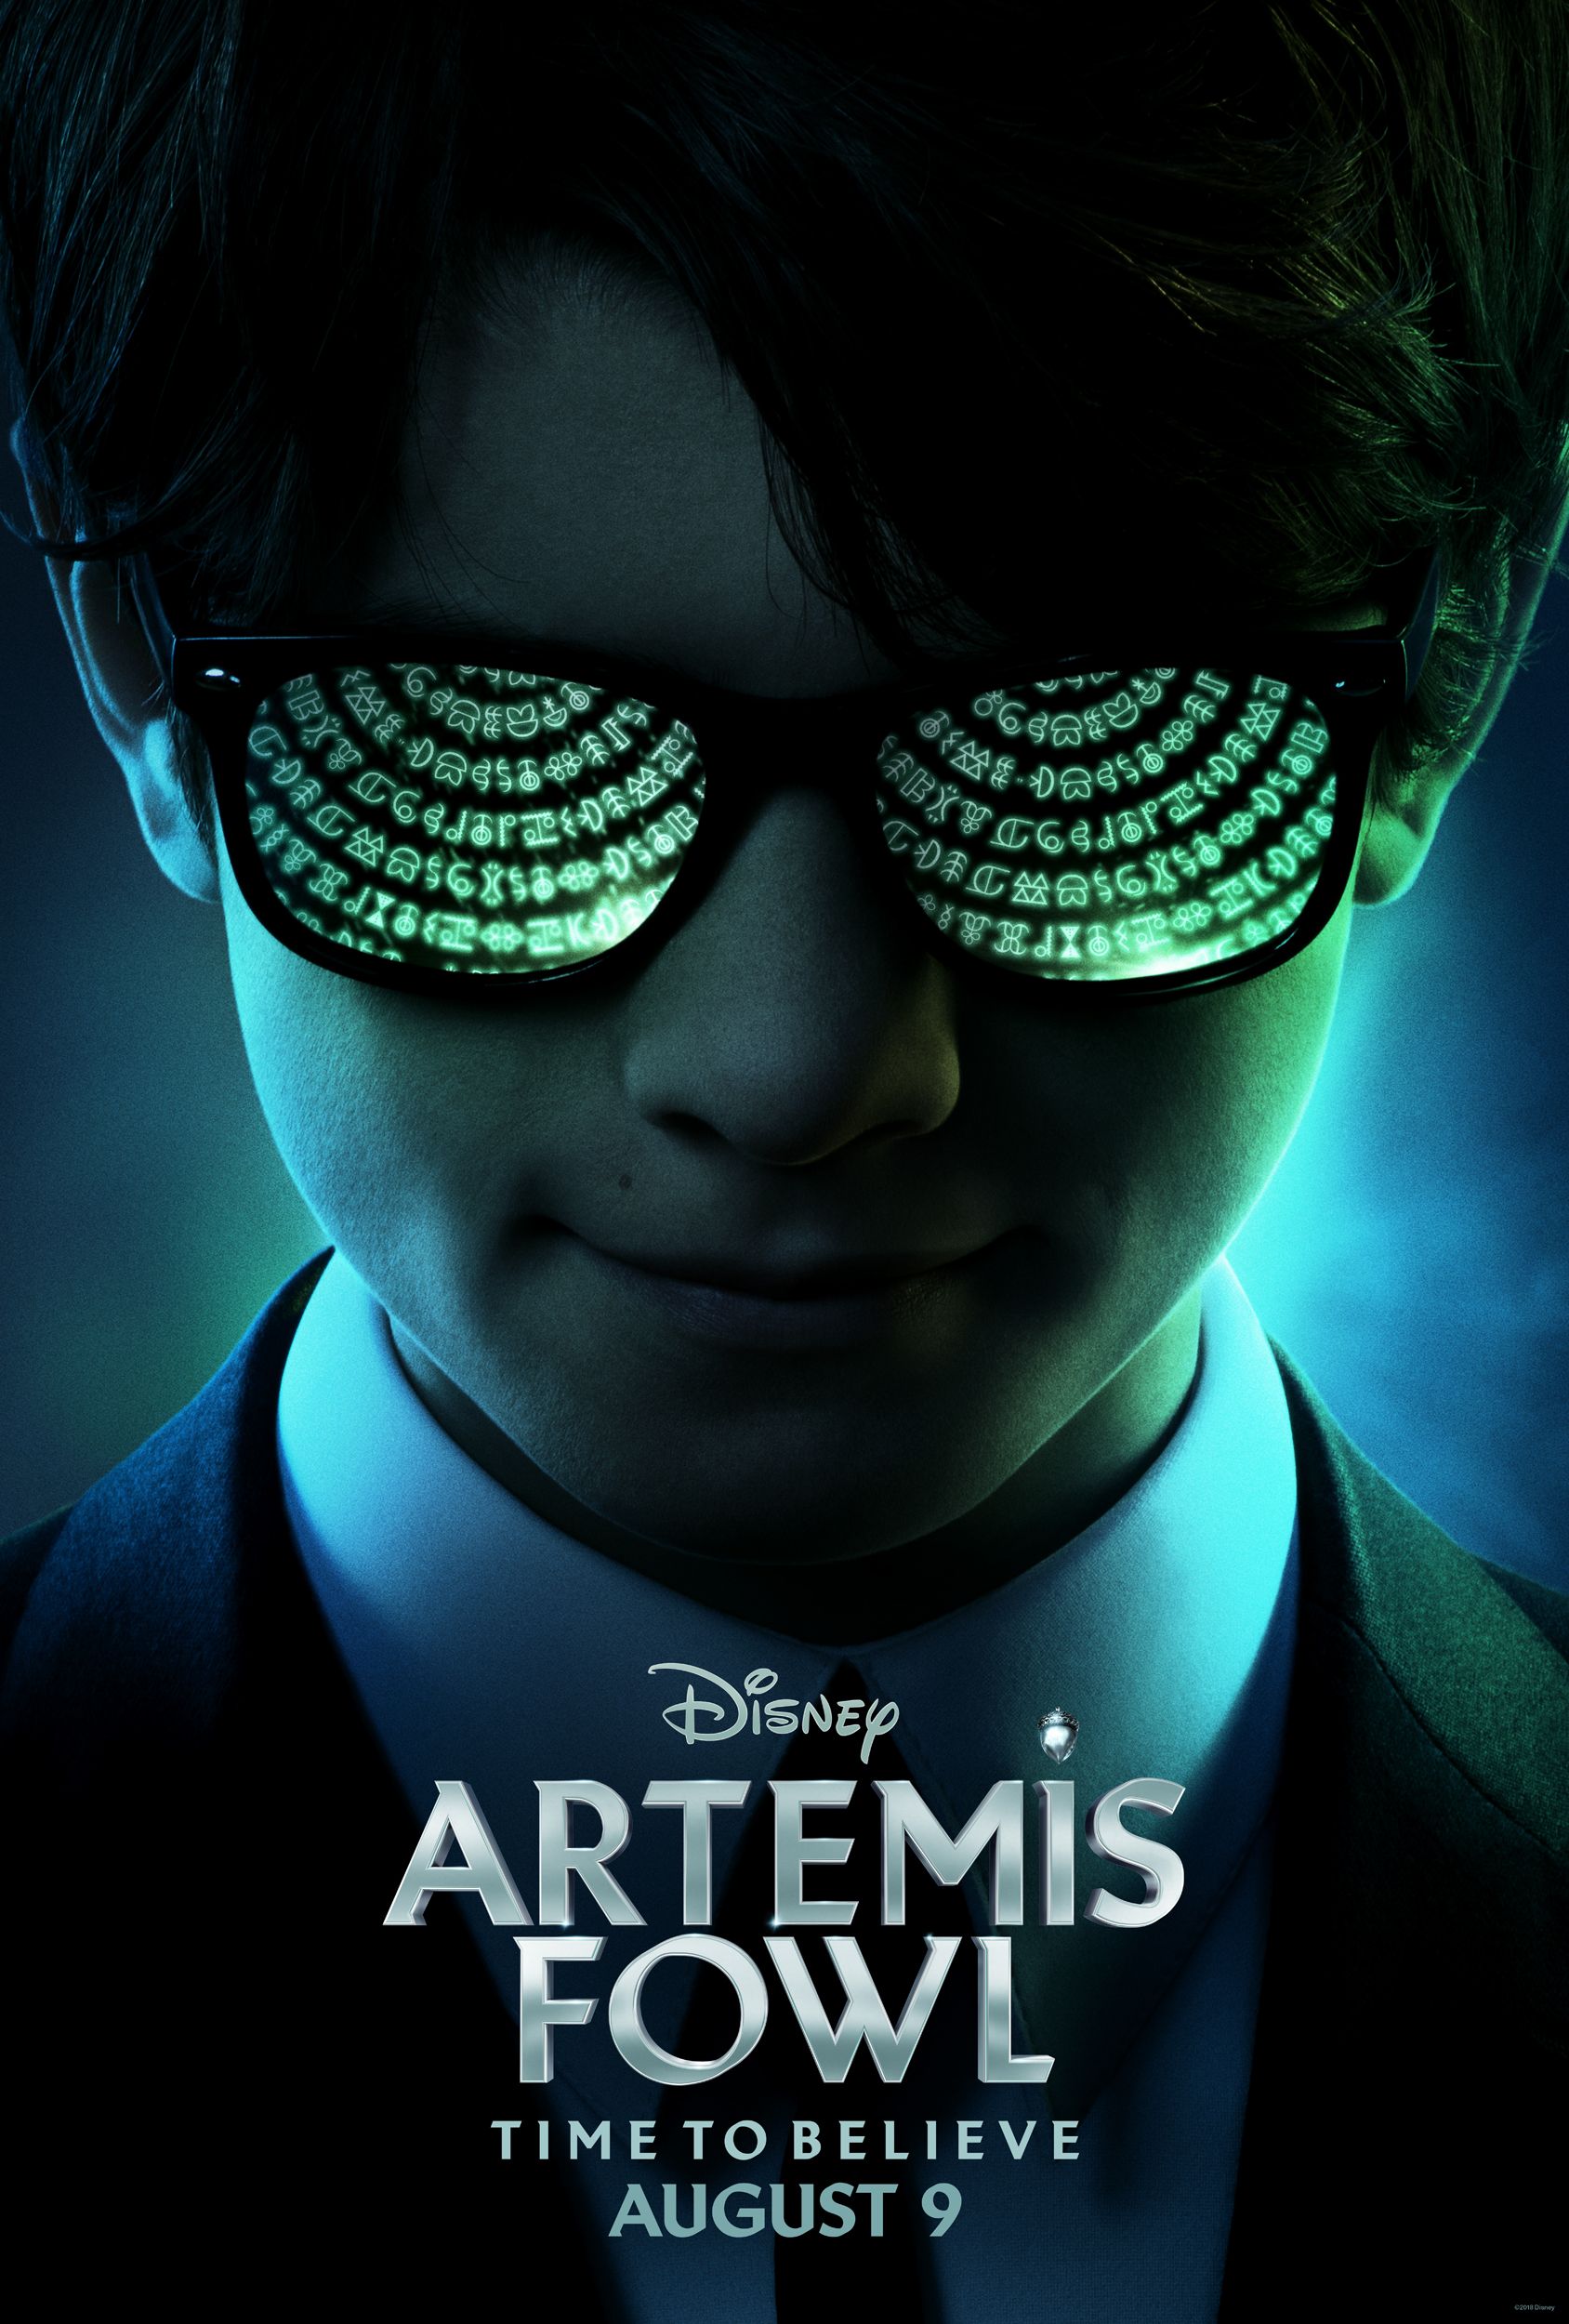 Artemis Fowl will make an appearance as one of the Disney Movies of 2019!